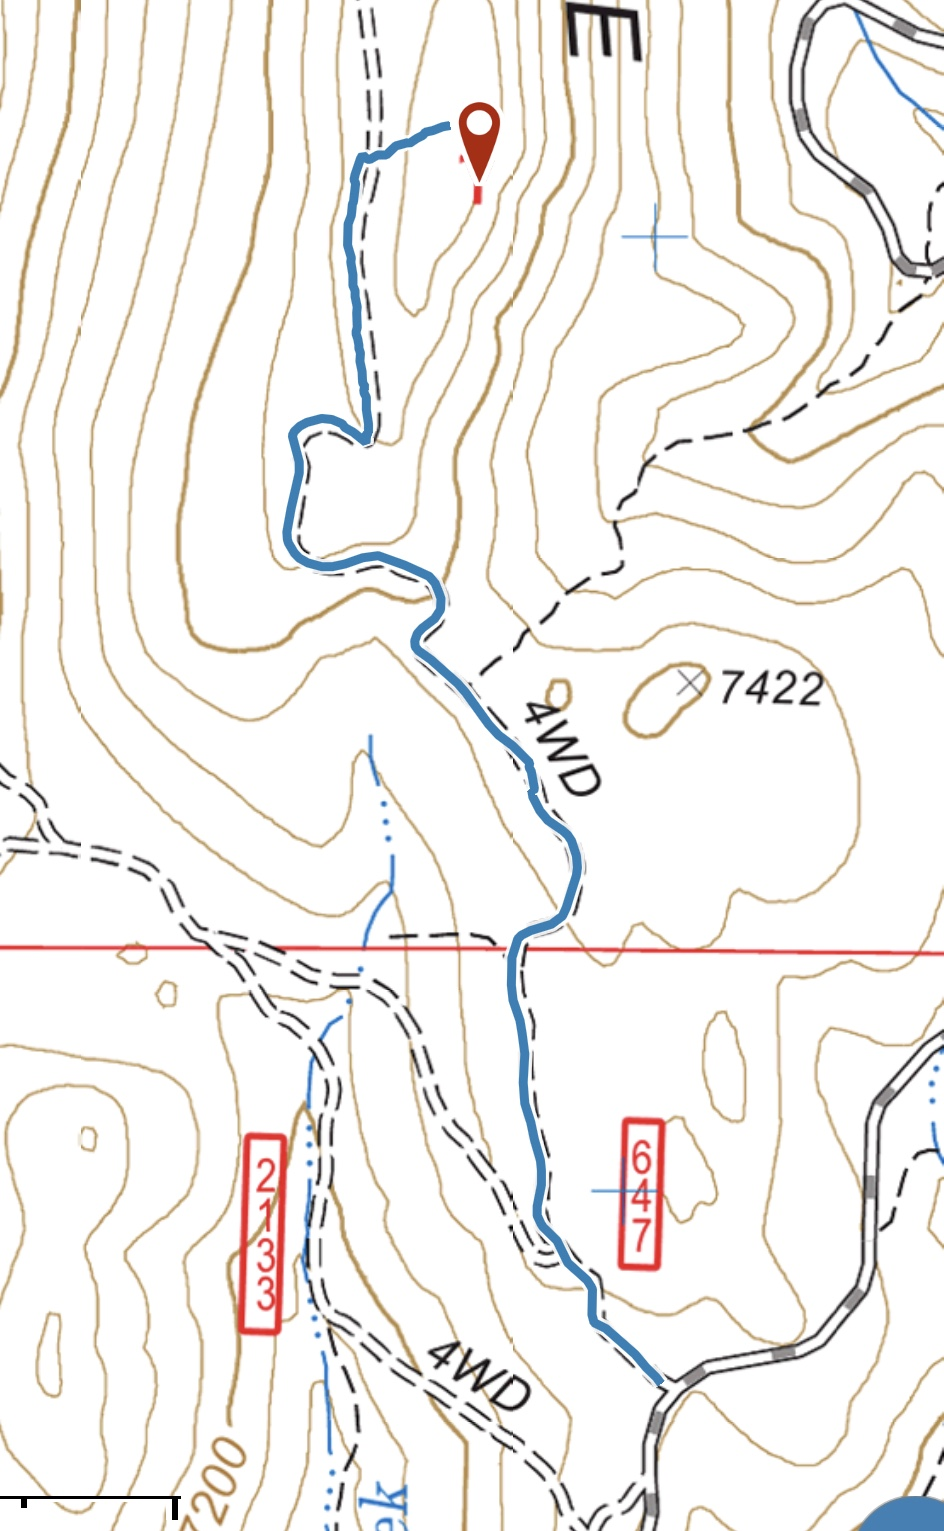 The easiest route to the summit is shown in red and utilizes FS-647.